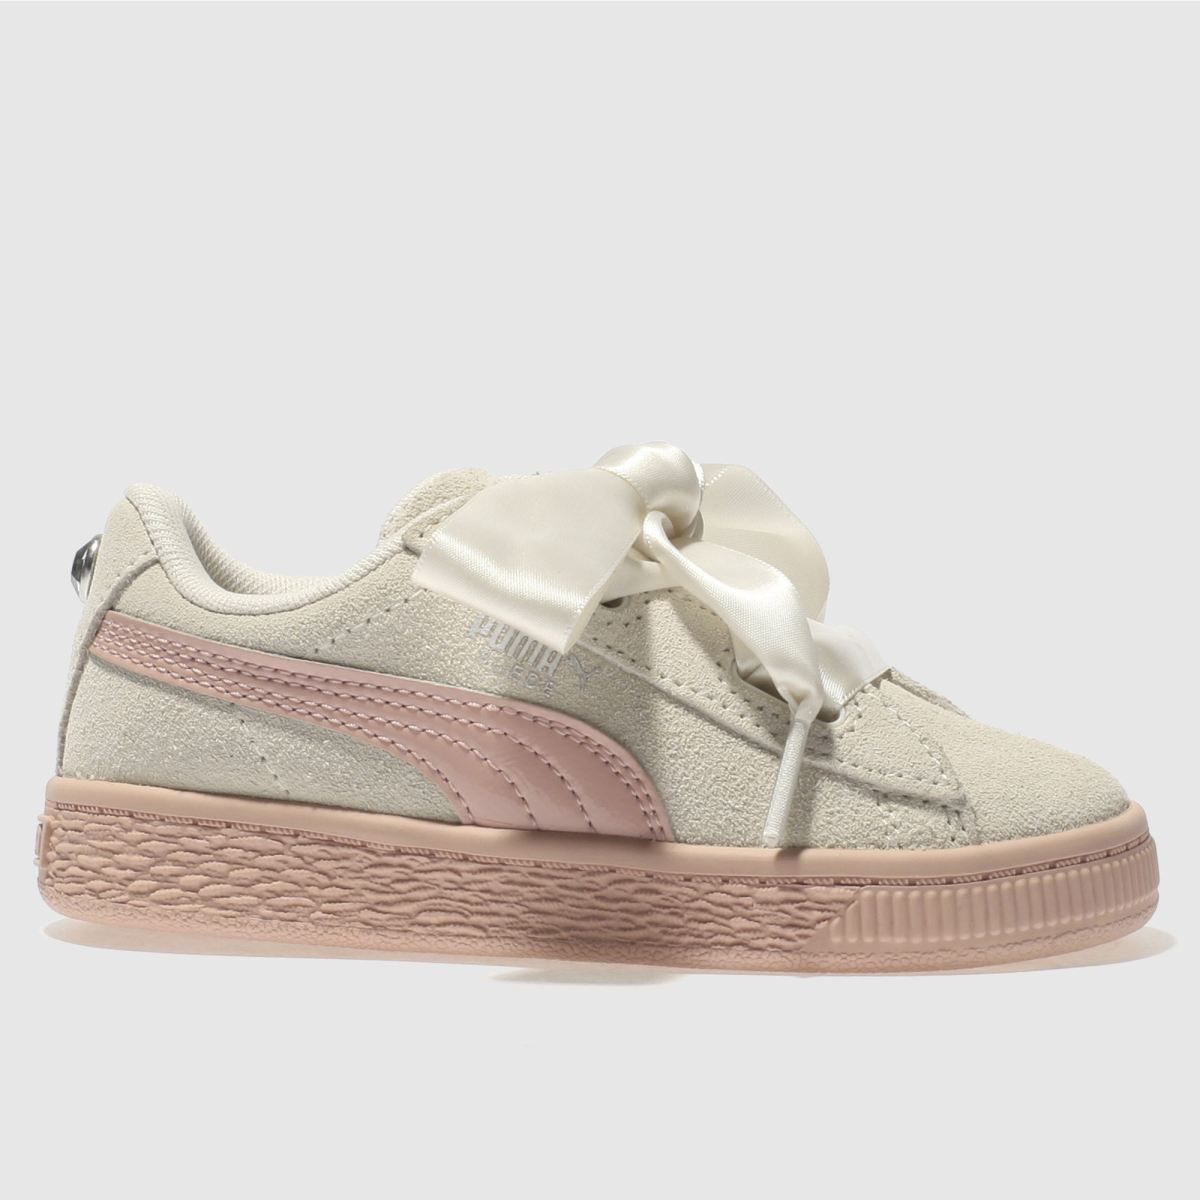 Puma White Suede Heart Jewel Girls Toddler Trainers